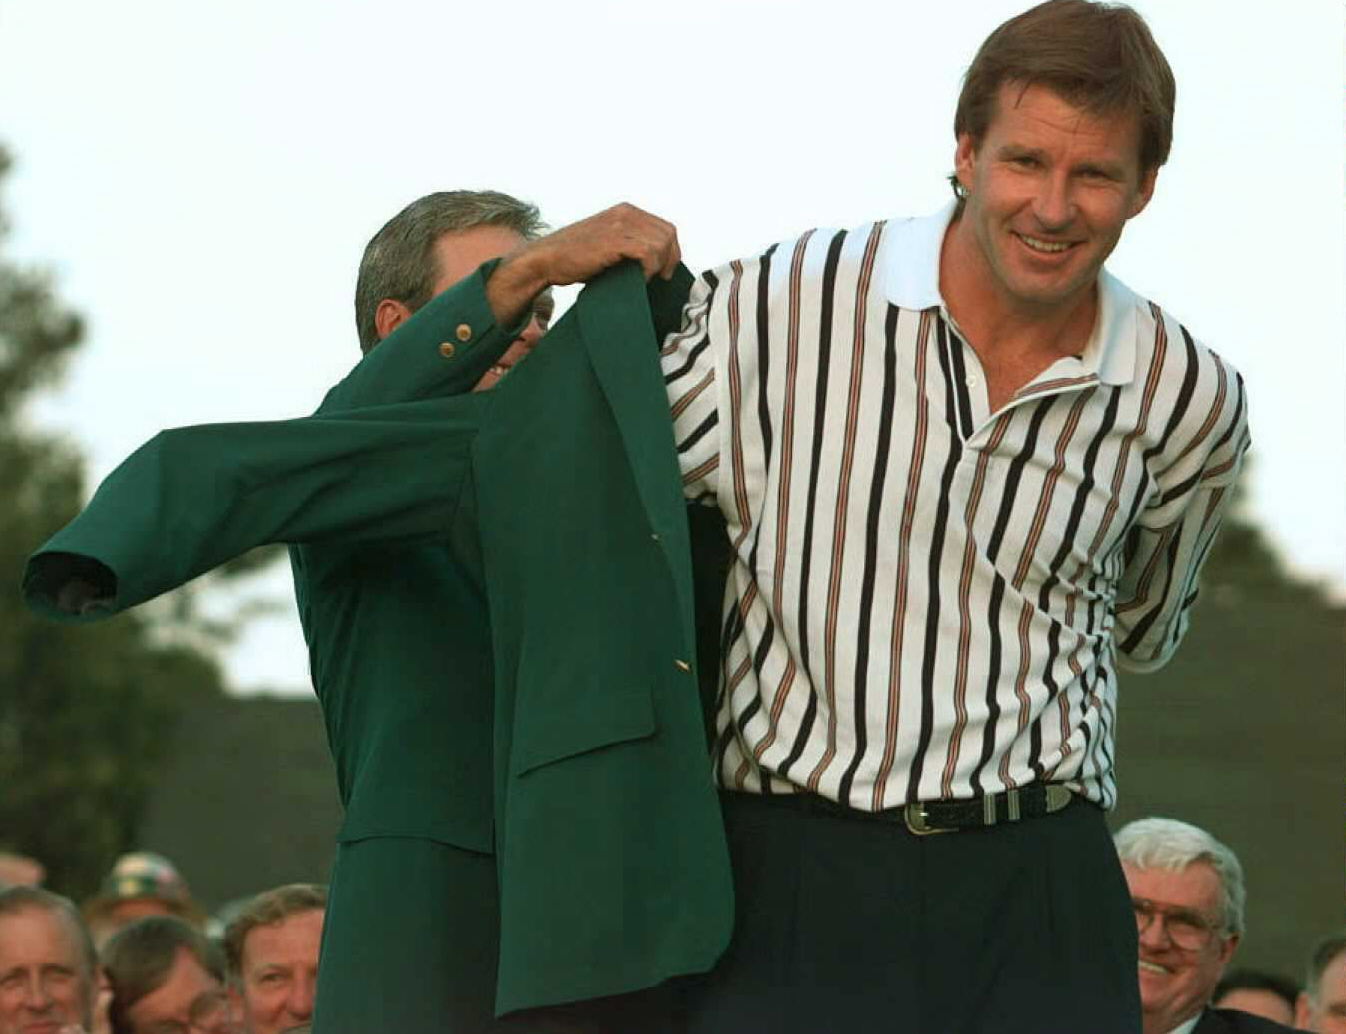 Nick Faldo dons his green jacket.